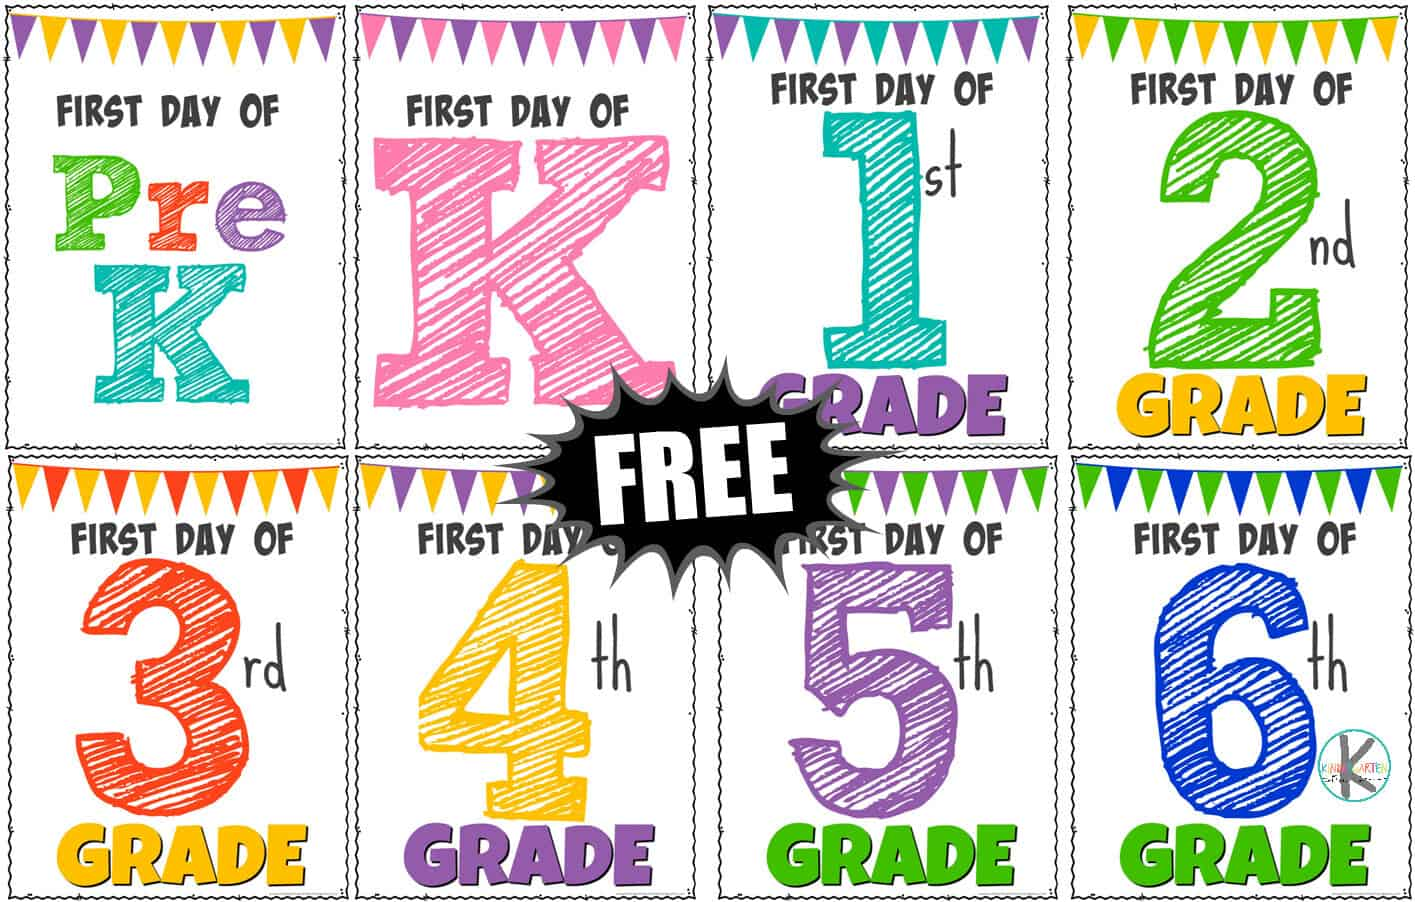 image relating to First Day of School Sign Printable known as Printable 1st Working day of College or university Indicators Kindergarten